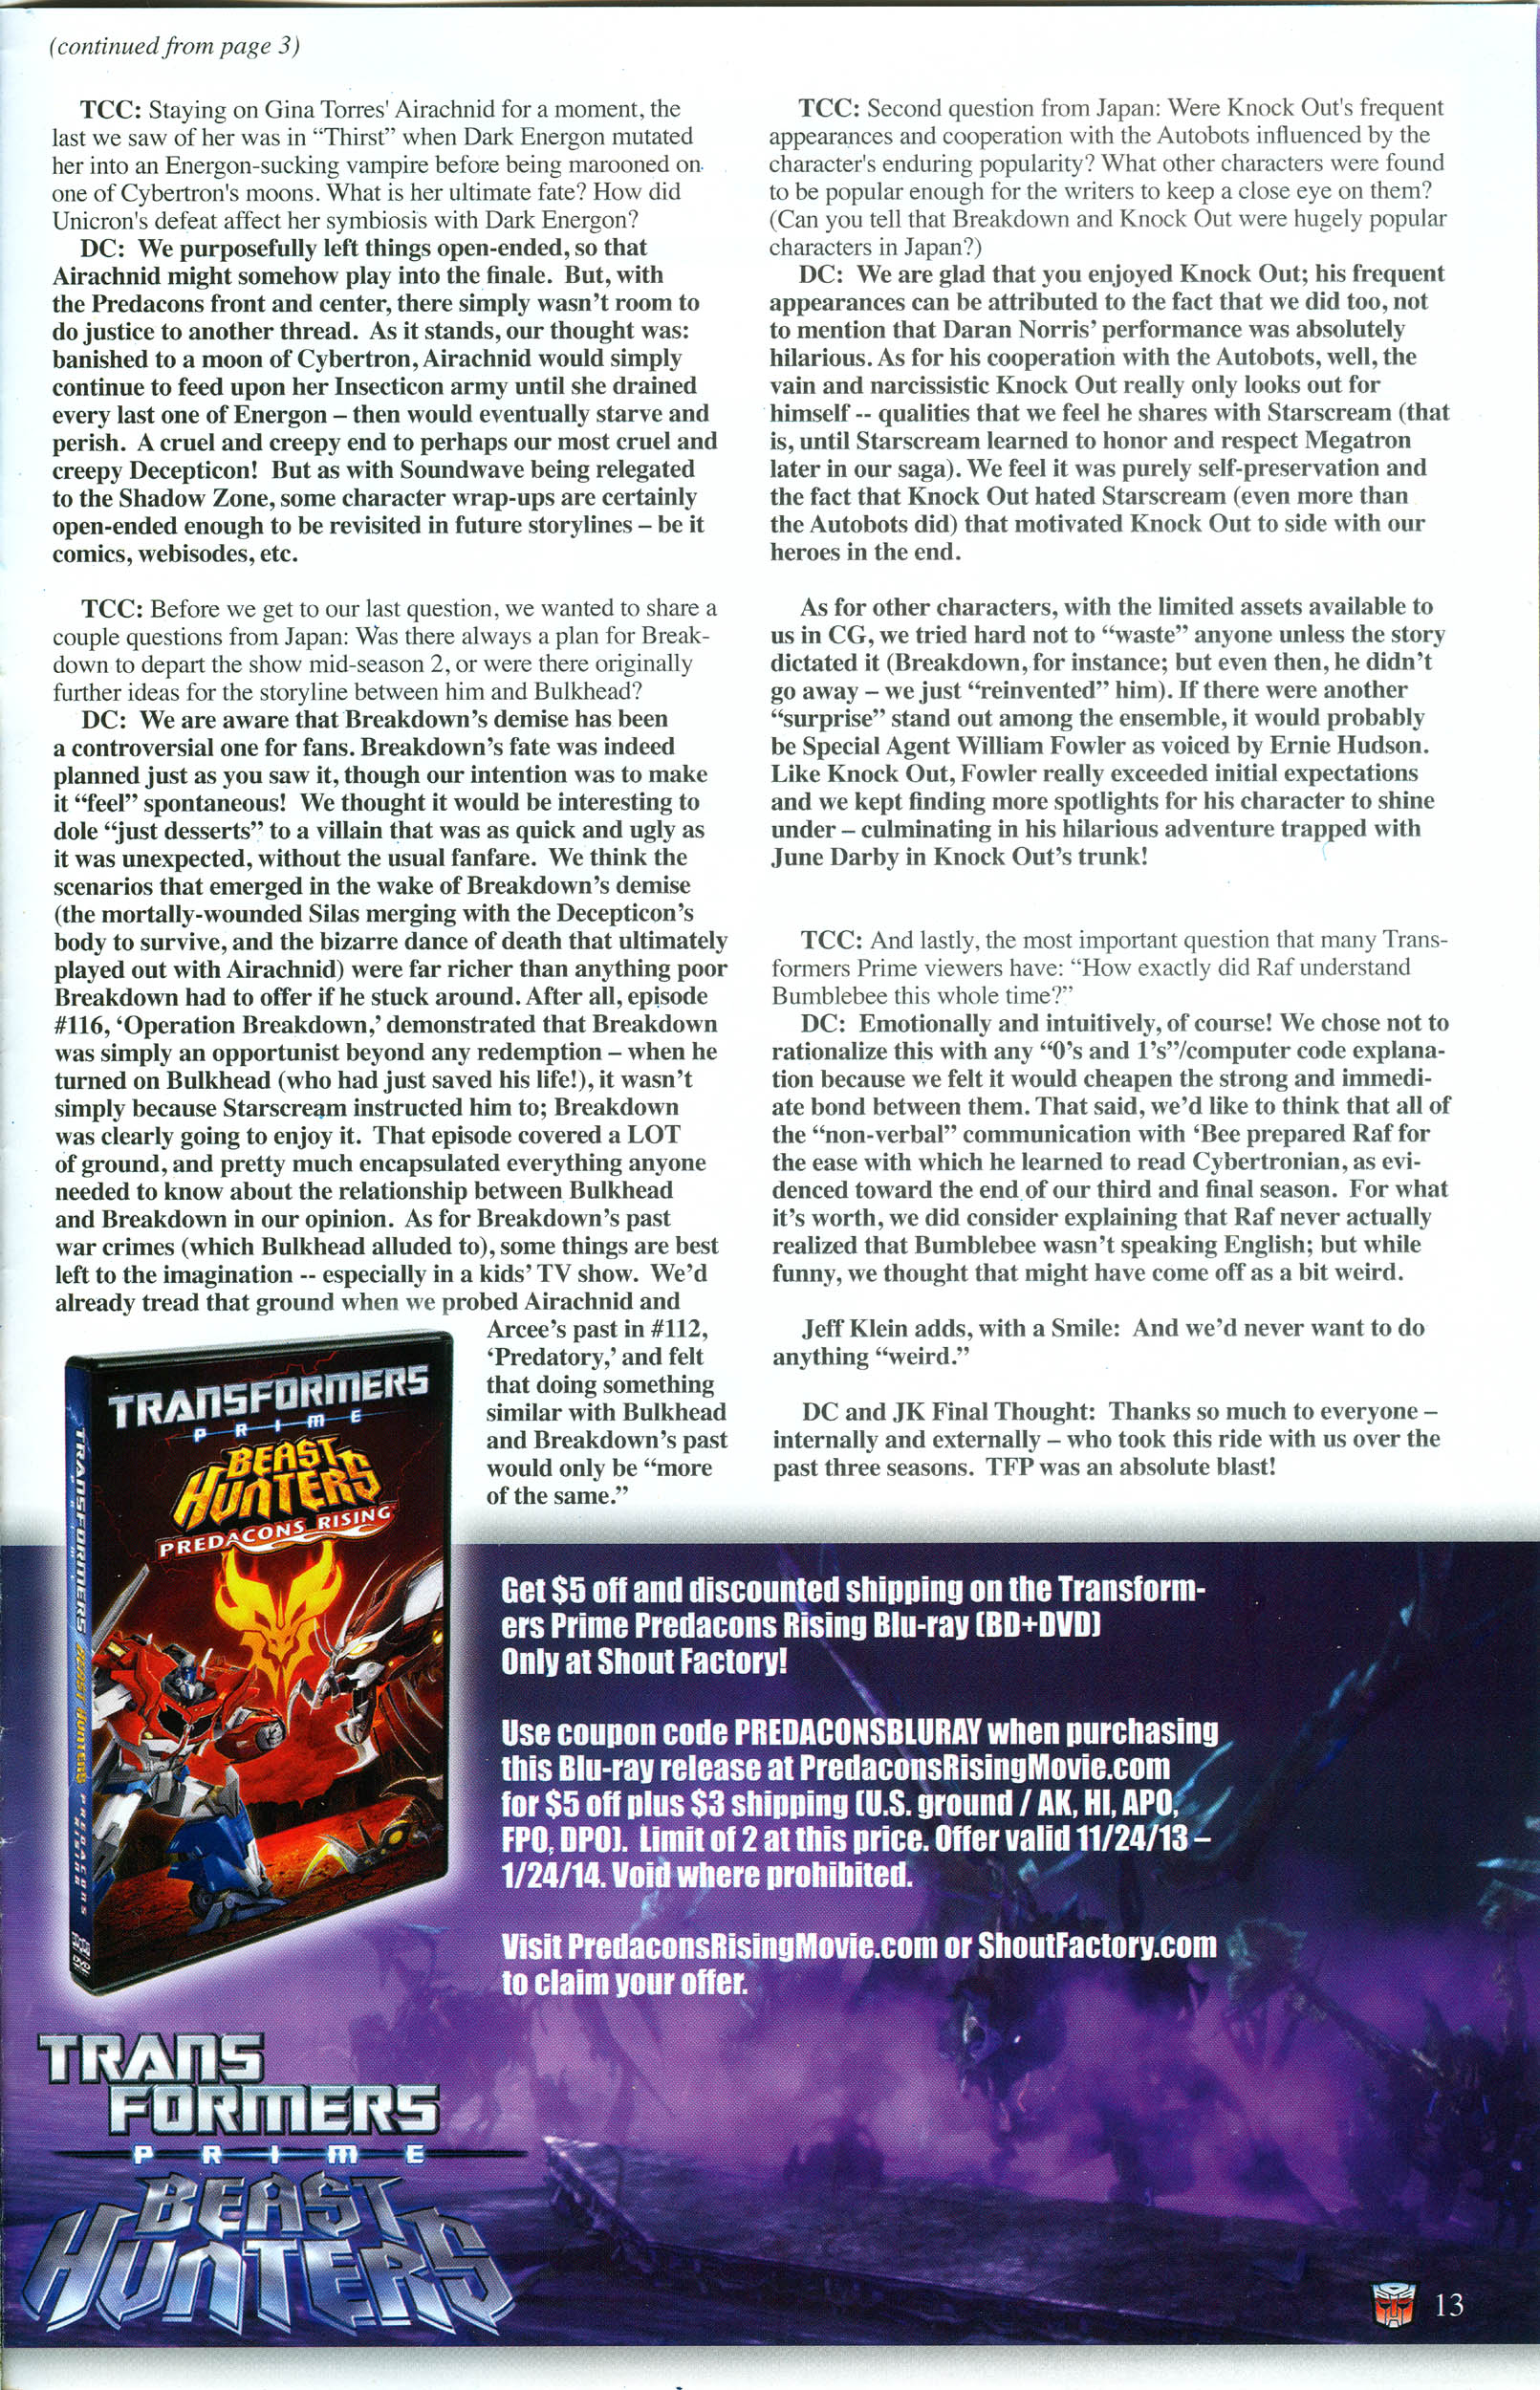 Read online Transformers: Collectors' Club comic -  Issue #54 - 13